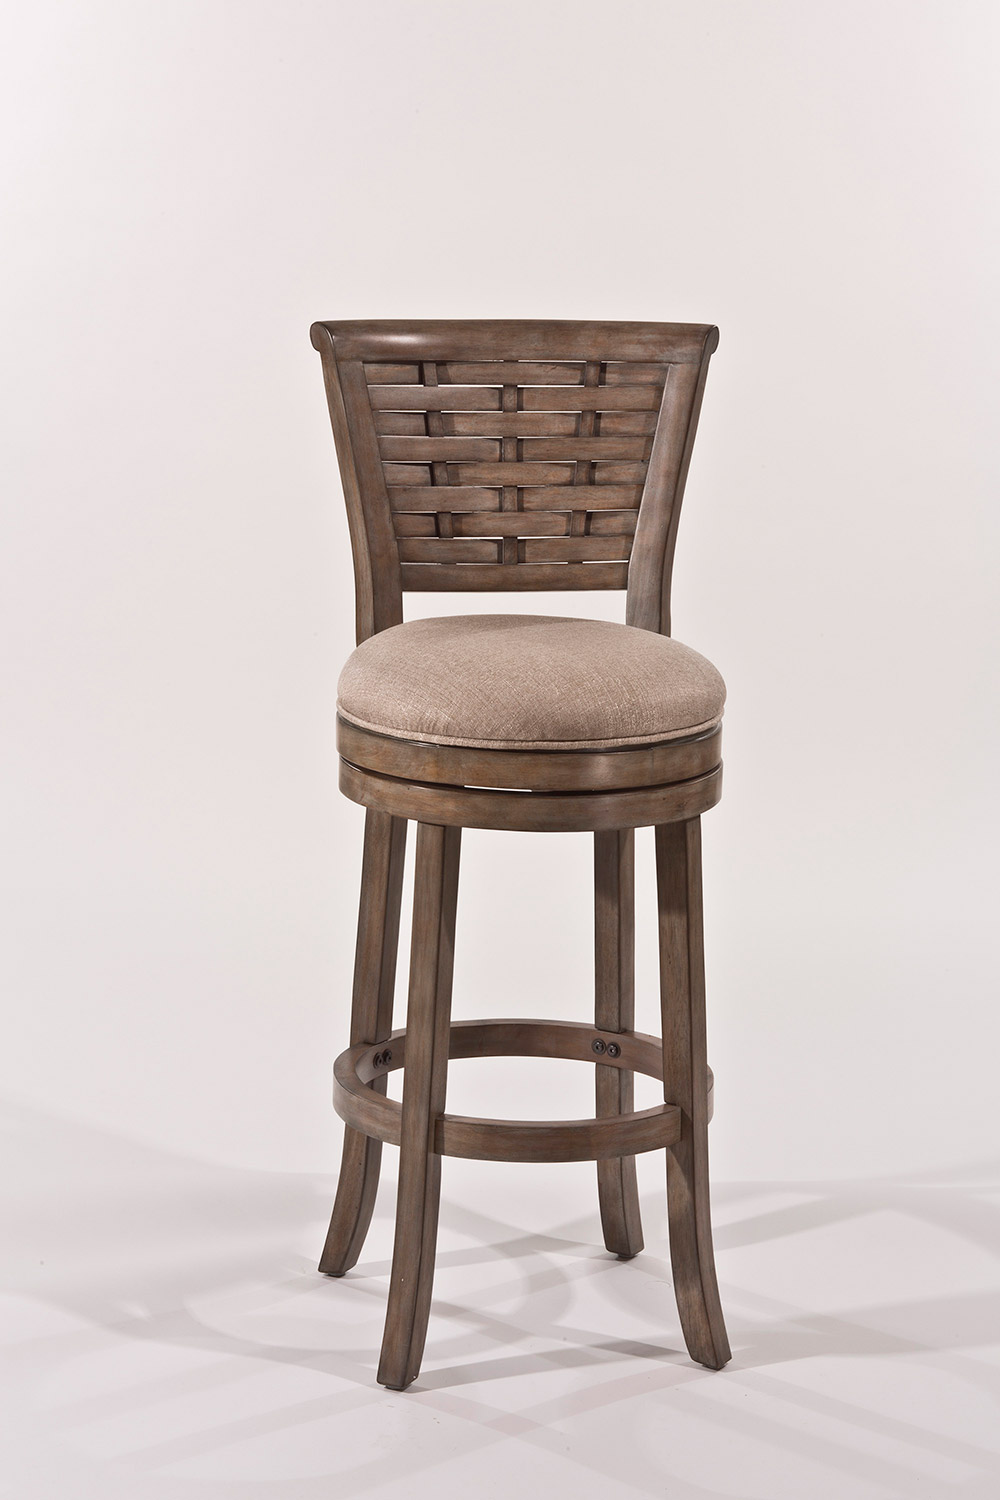 Hillsdale Thredson Swivel Counter Stool - Light Antique Graywash - Putty Fabric